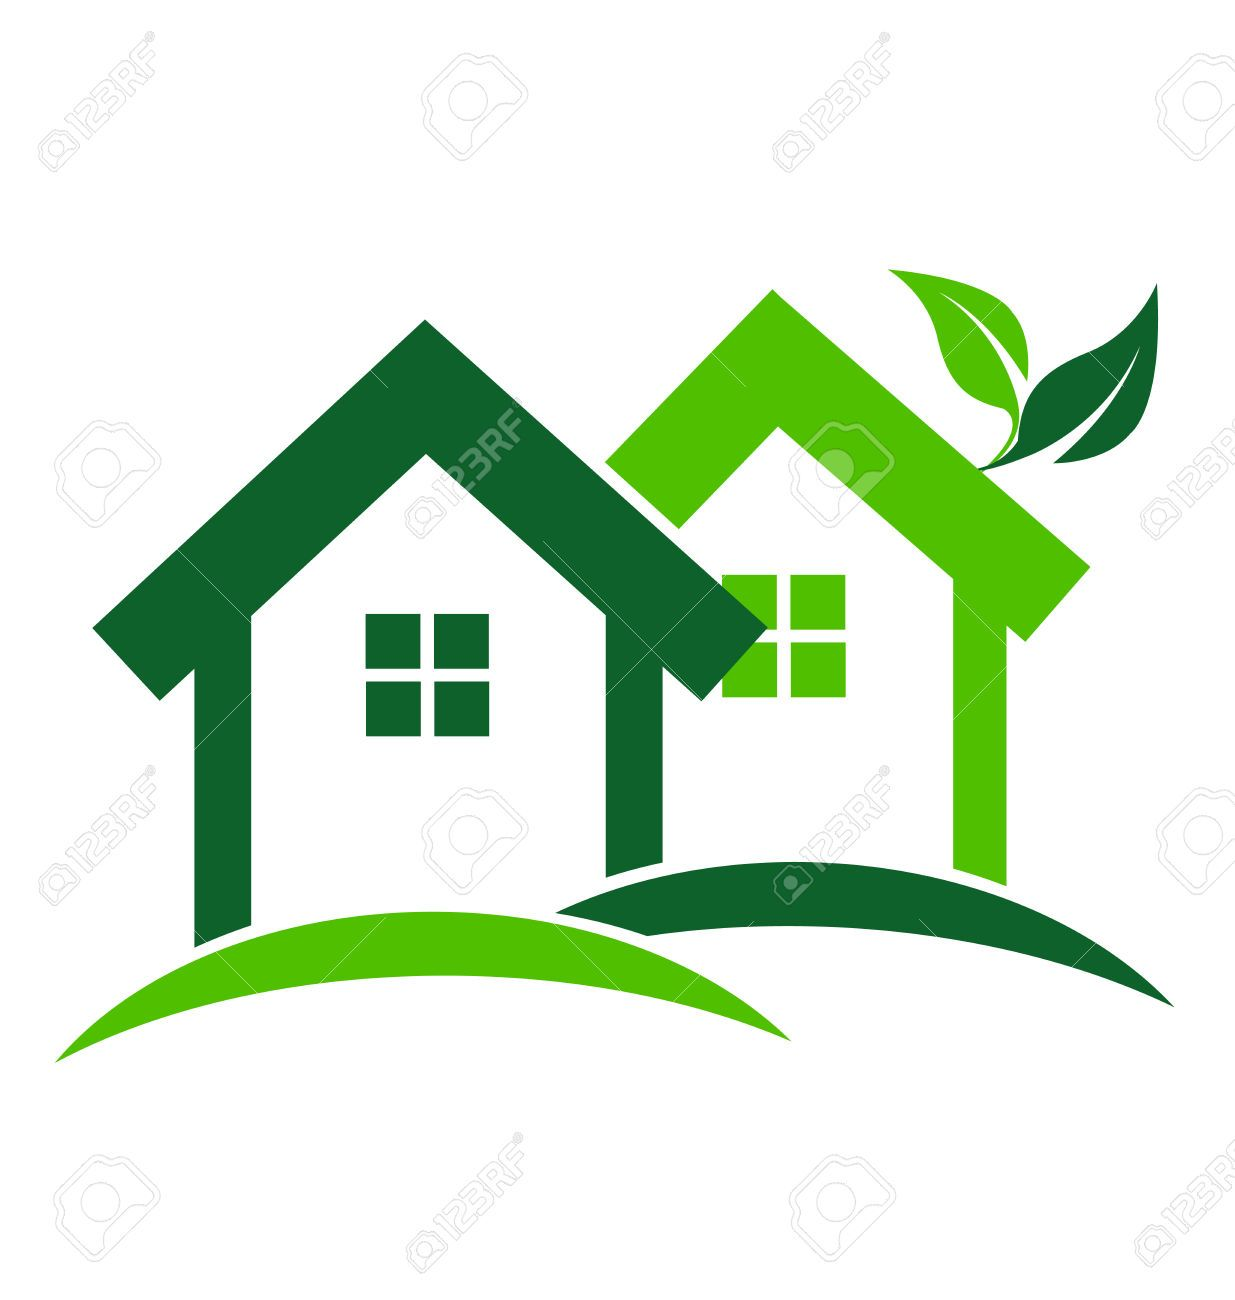 green houses real estate business card design vector icon royalty free cliparts vectors and stock illustration image 35628987  [ 1235 x 1300 Pixel ]